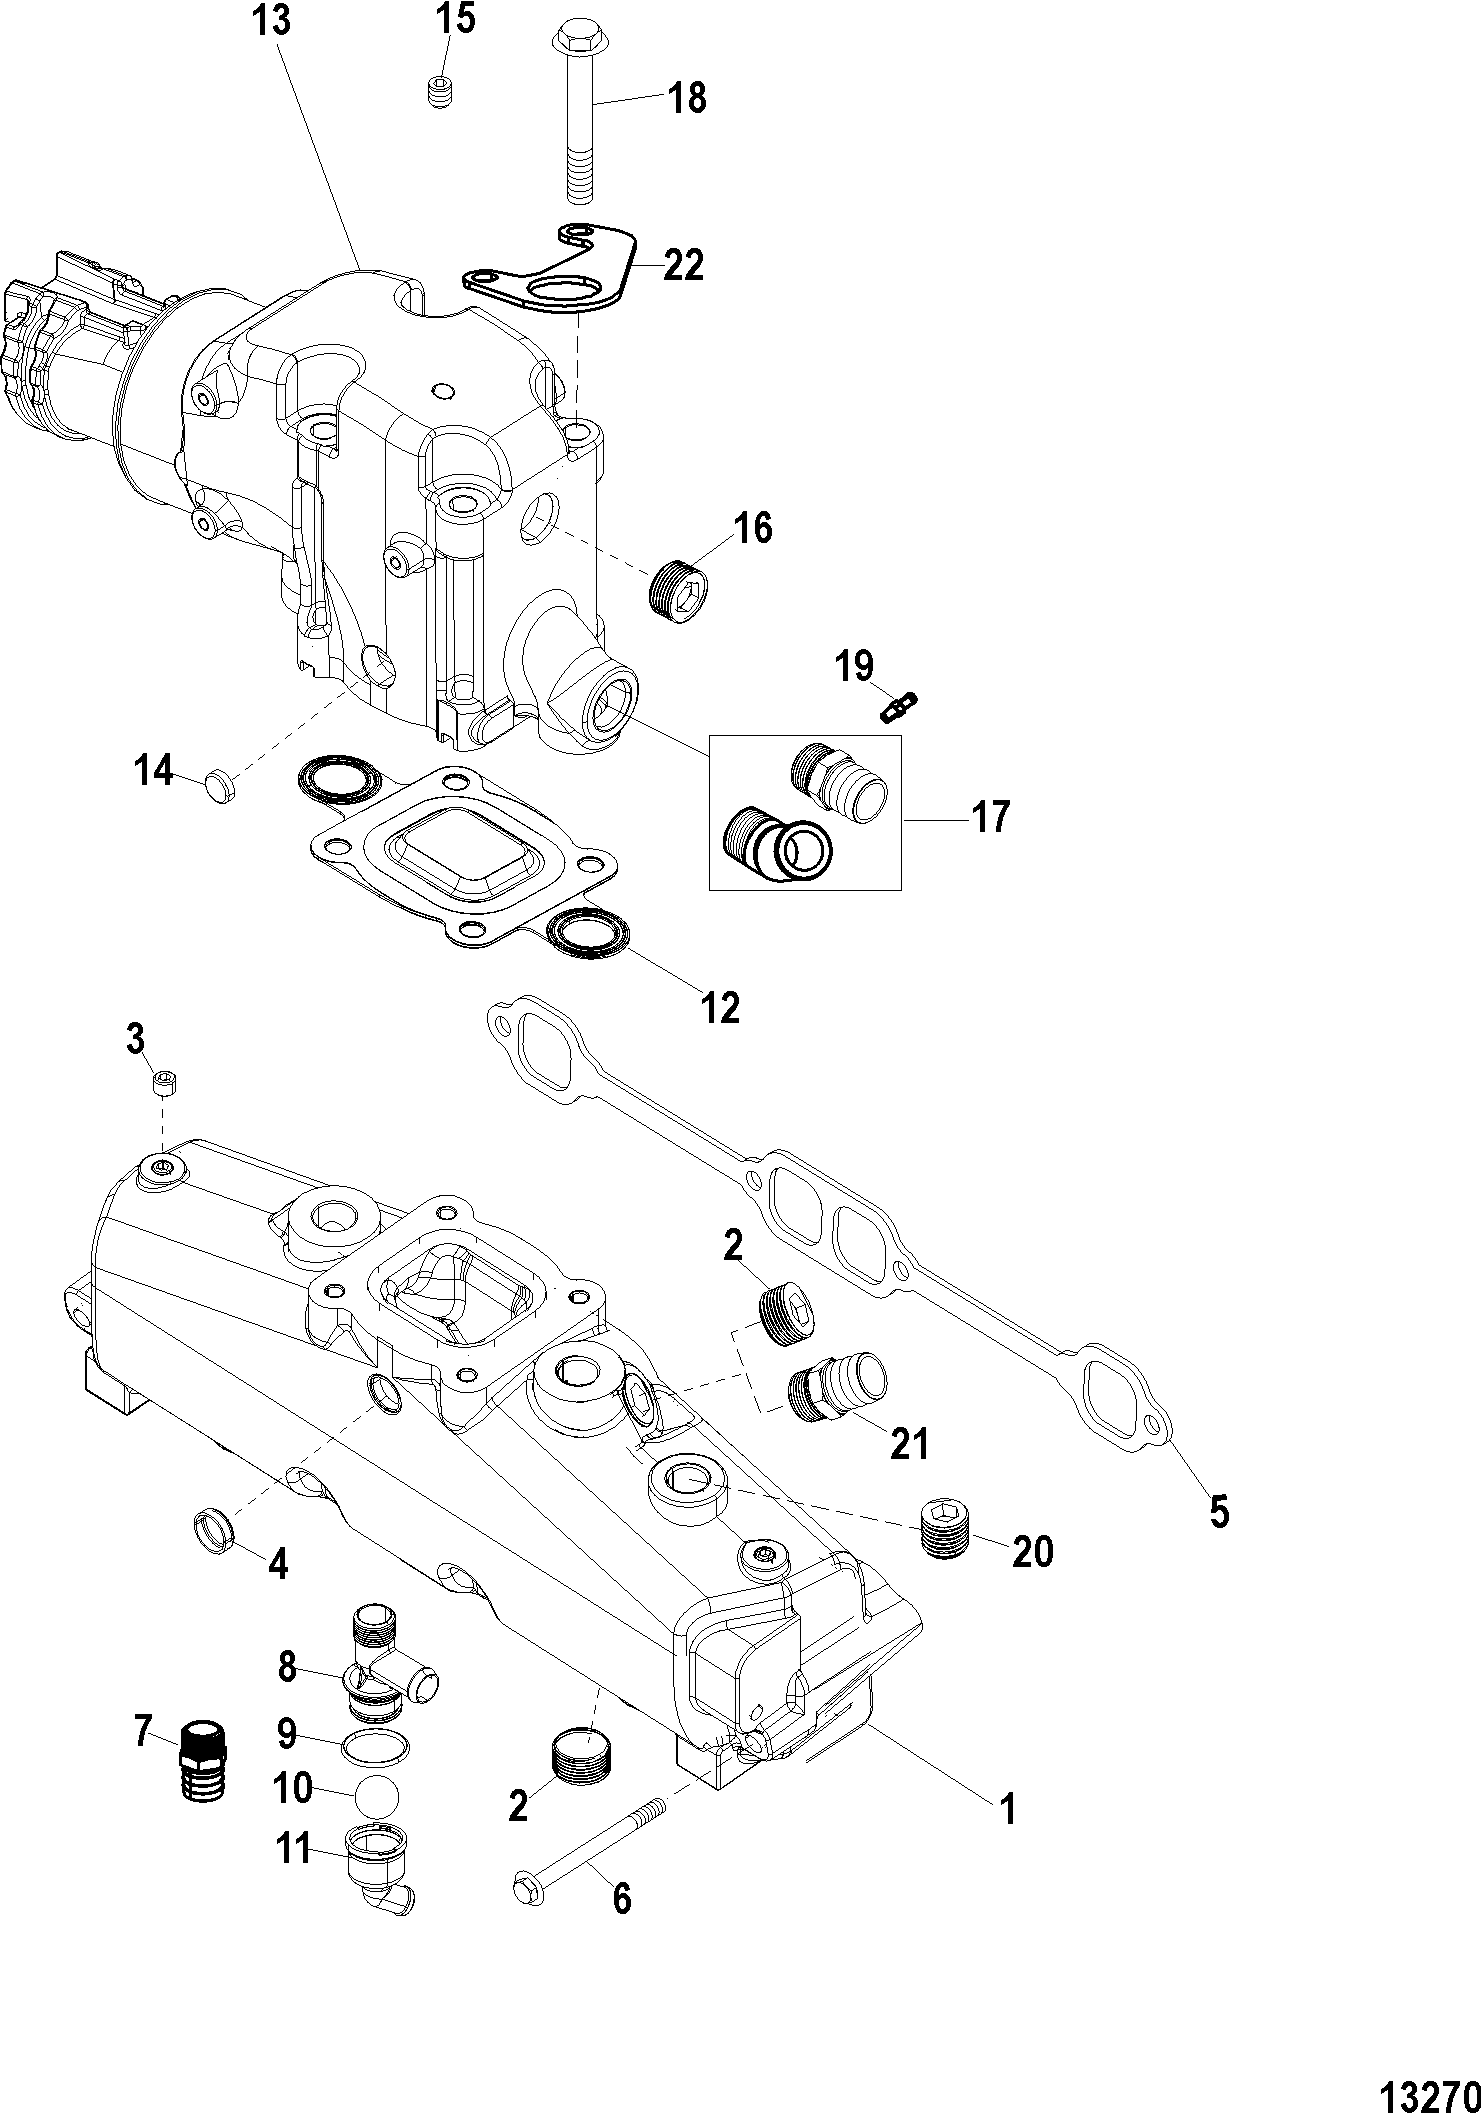 hight resolution of exhaust manifold and elbow